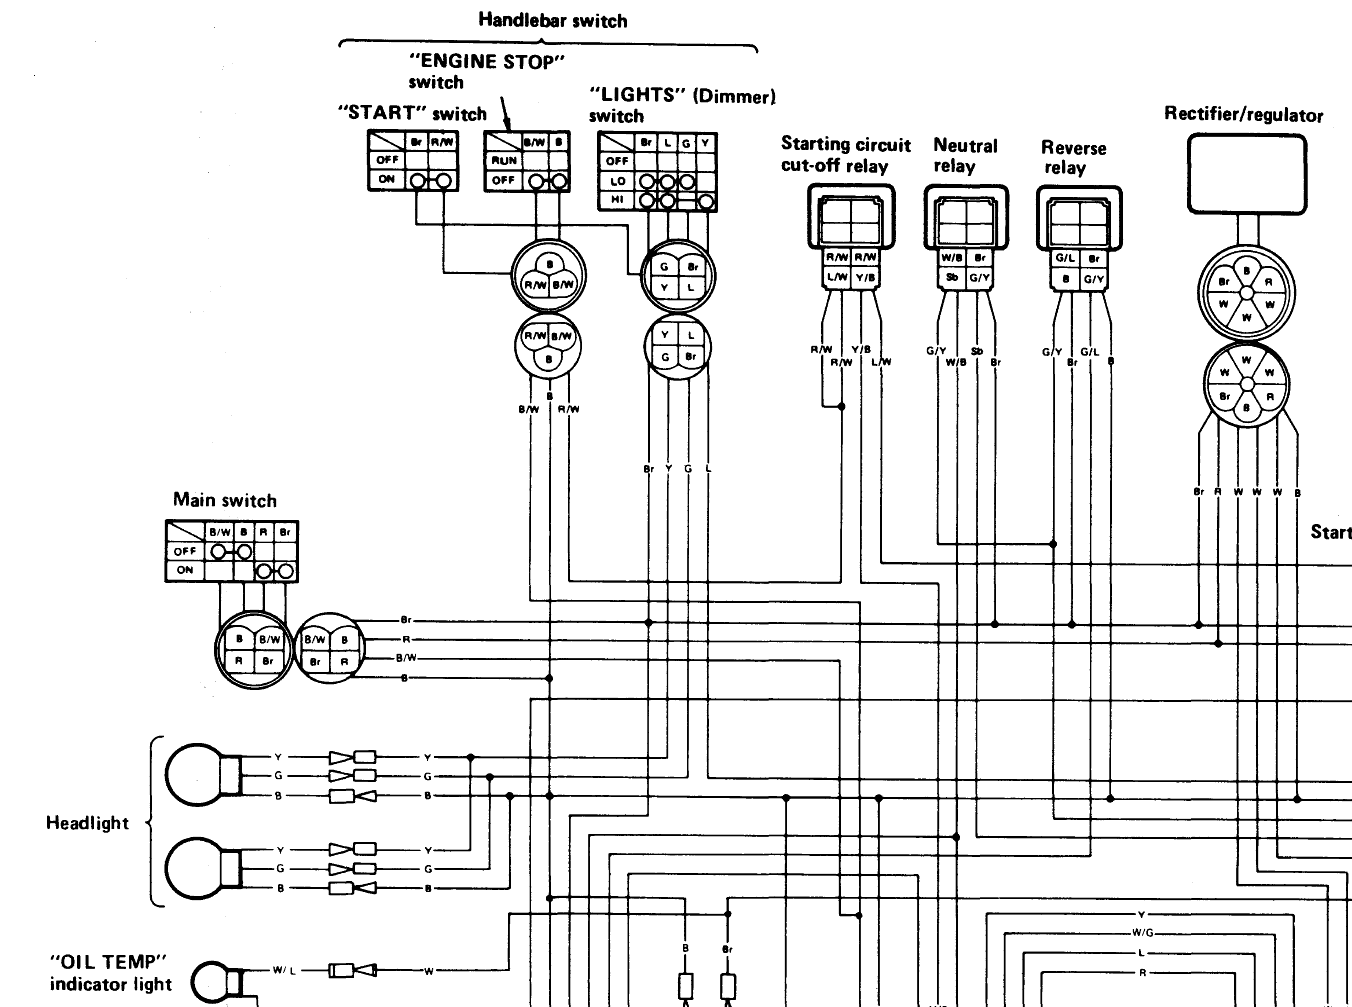 1987 yamaha warrior 350 service manual – the reasons why we love, Wiring diagram